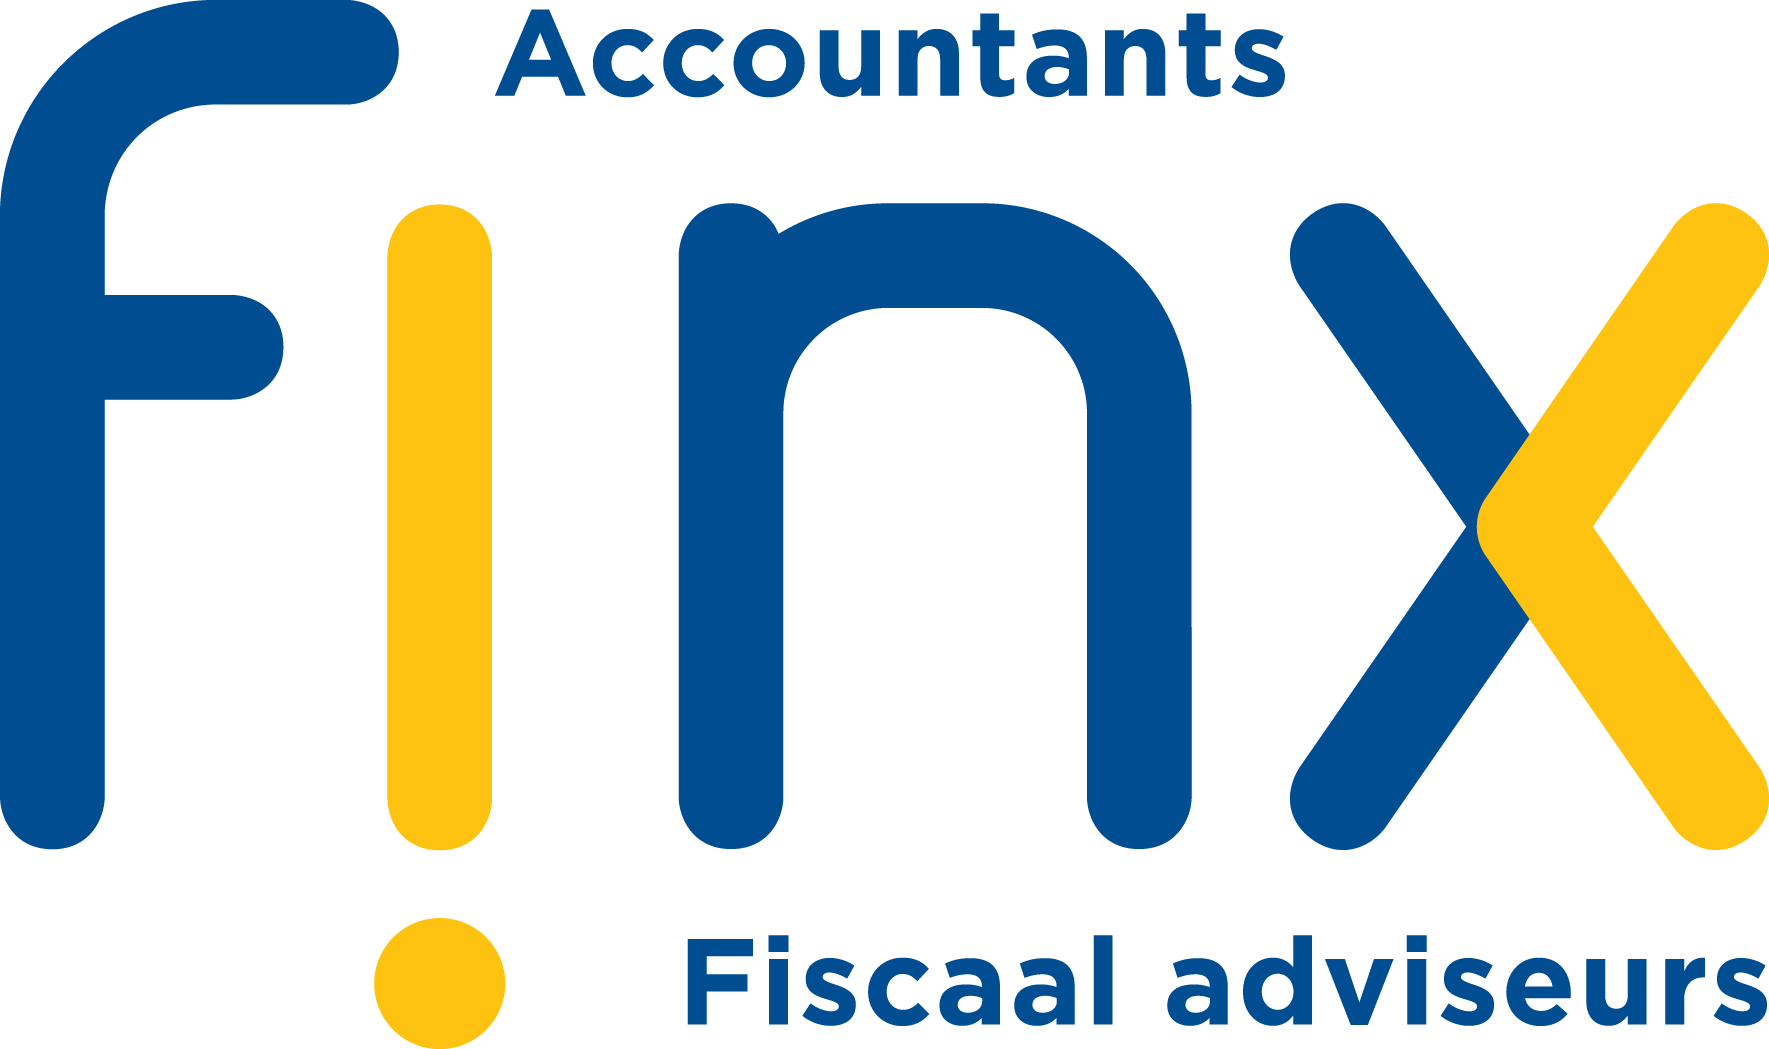 Finx Accountants & Belastingadviseurs B.V.